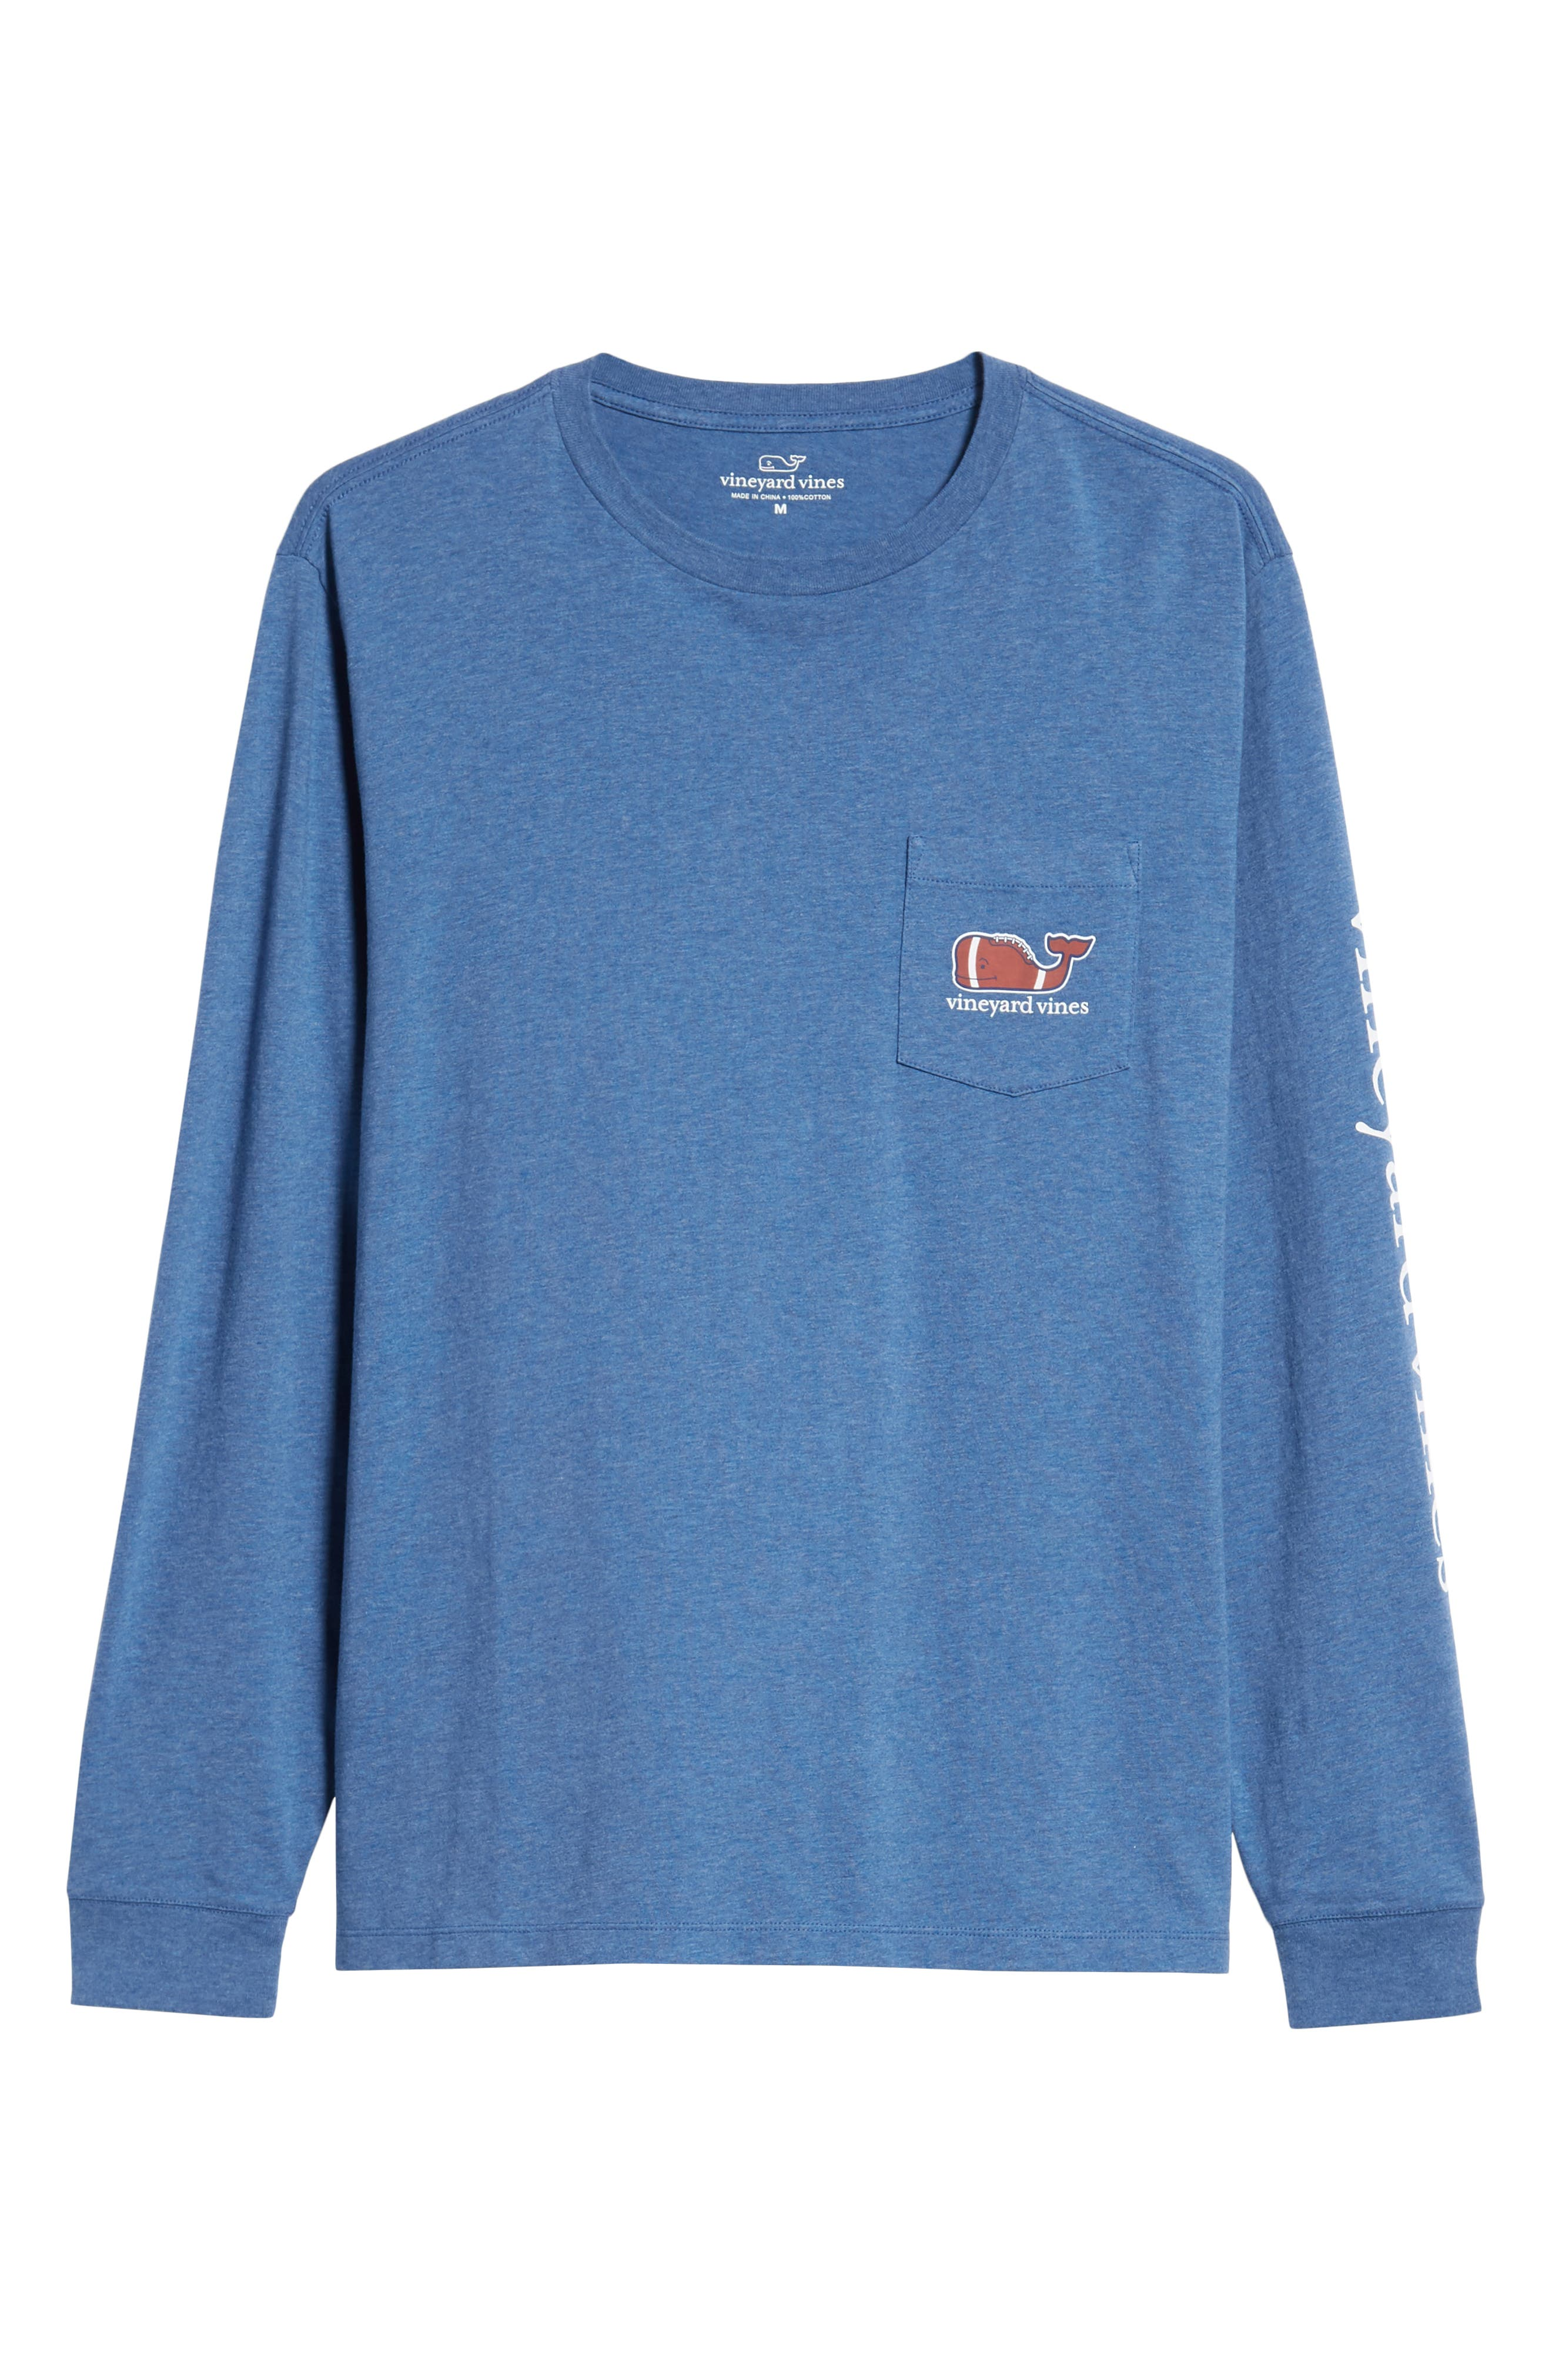 Football Whale Long Sleeve Pocket T-Shirt,                             Alternate thumbnail 6, color,                             MOONSHINE